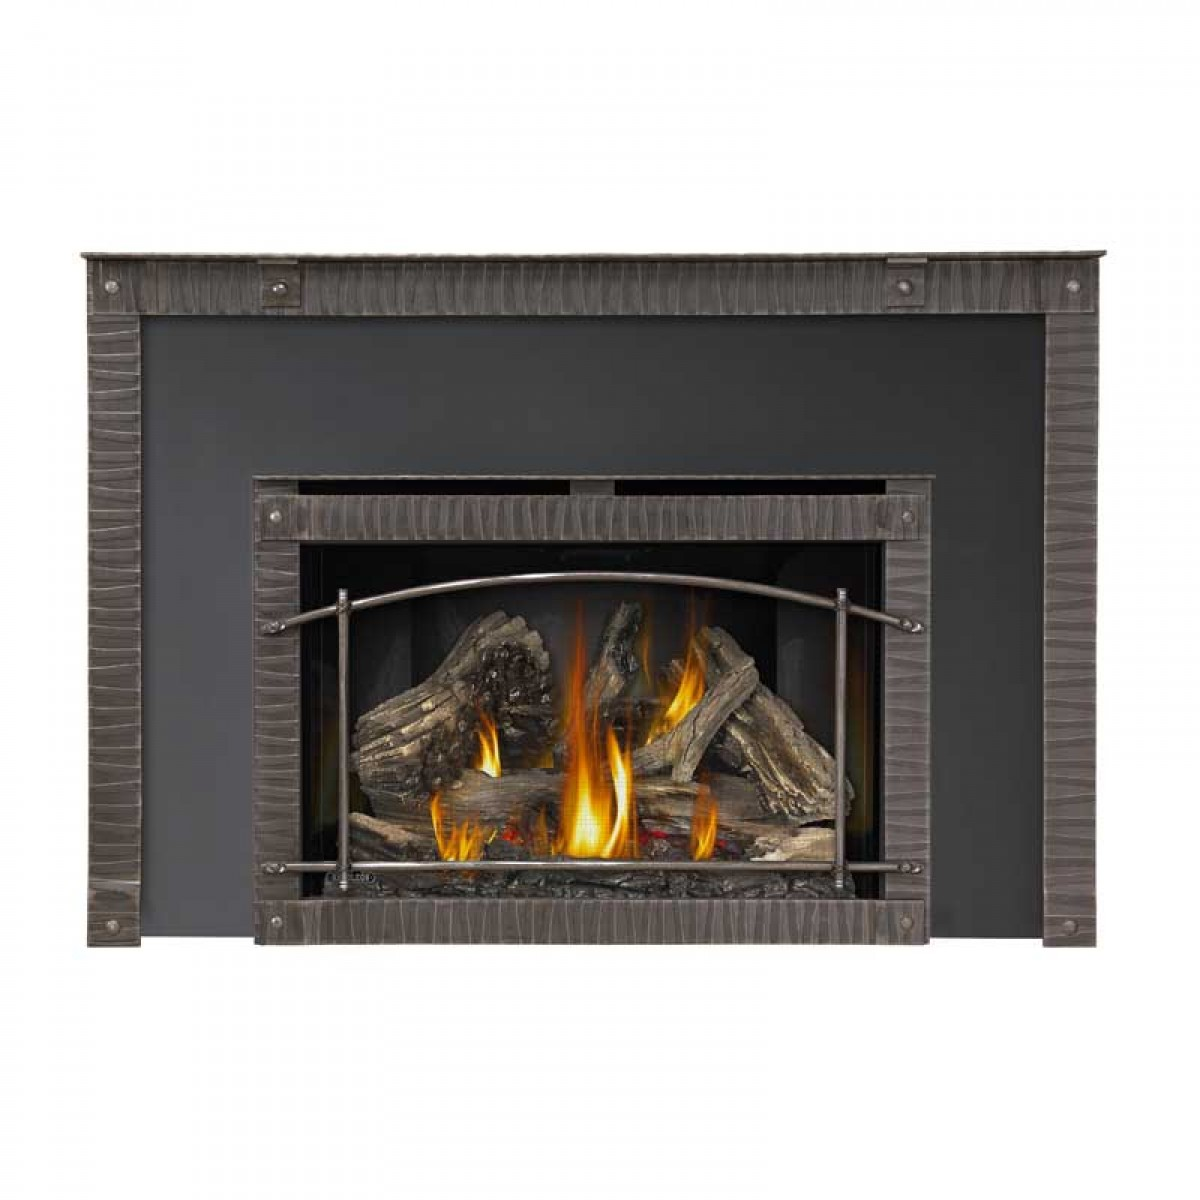 Napoleon Xir4n 1 Large Deluxe Natural Gas Fireplace Insert